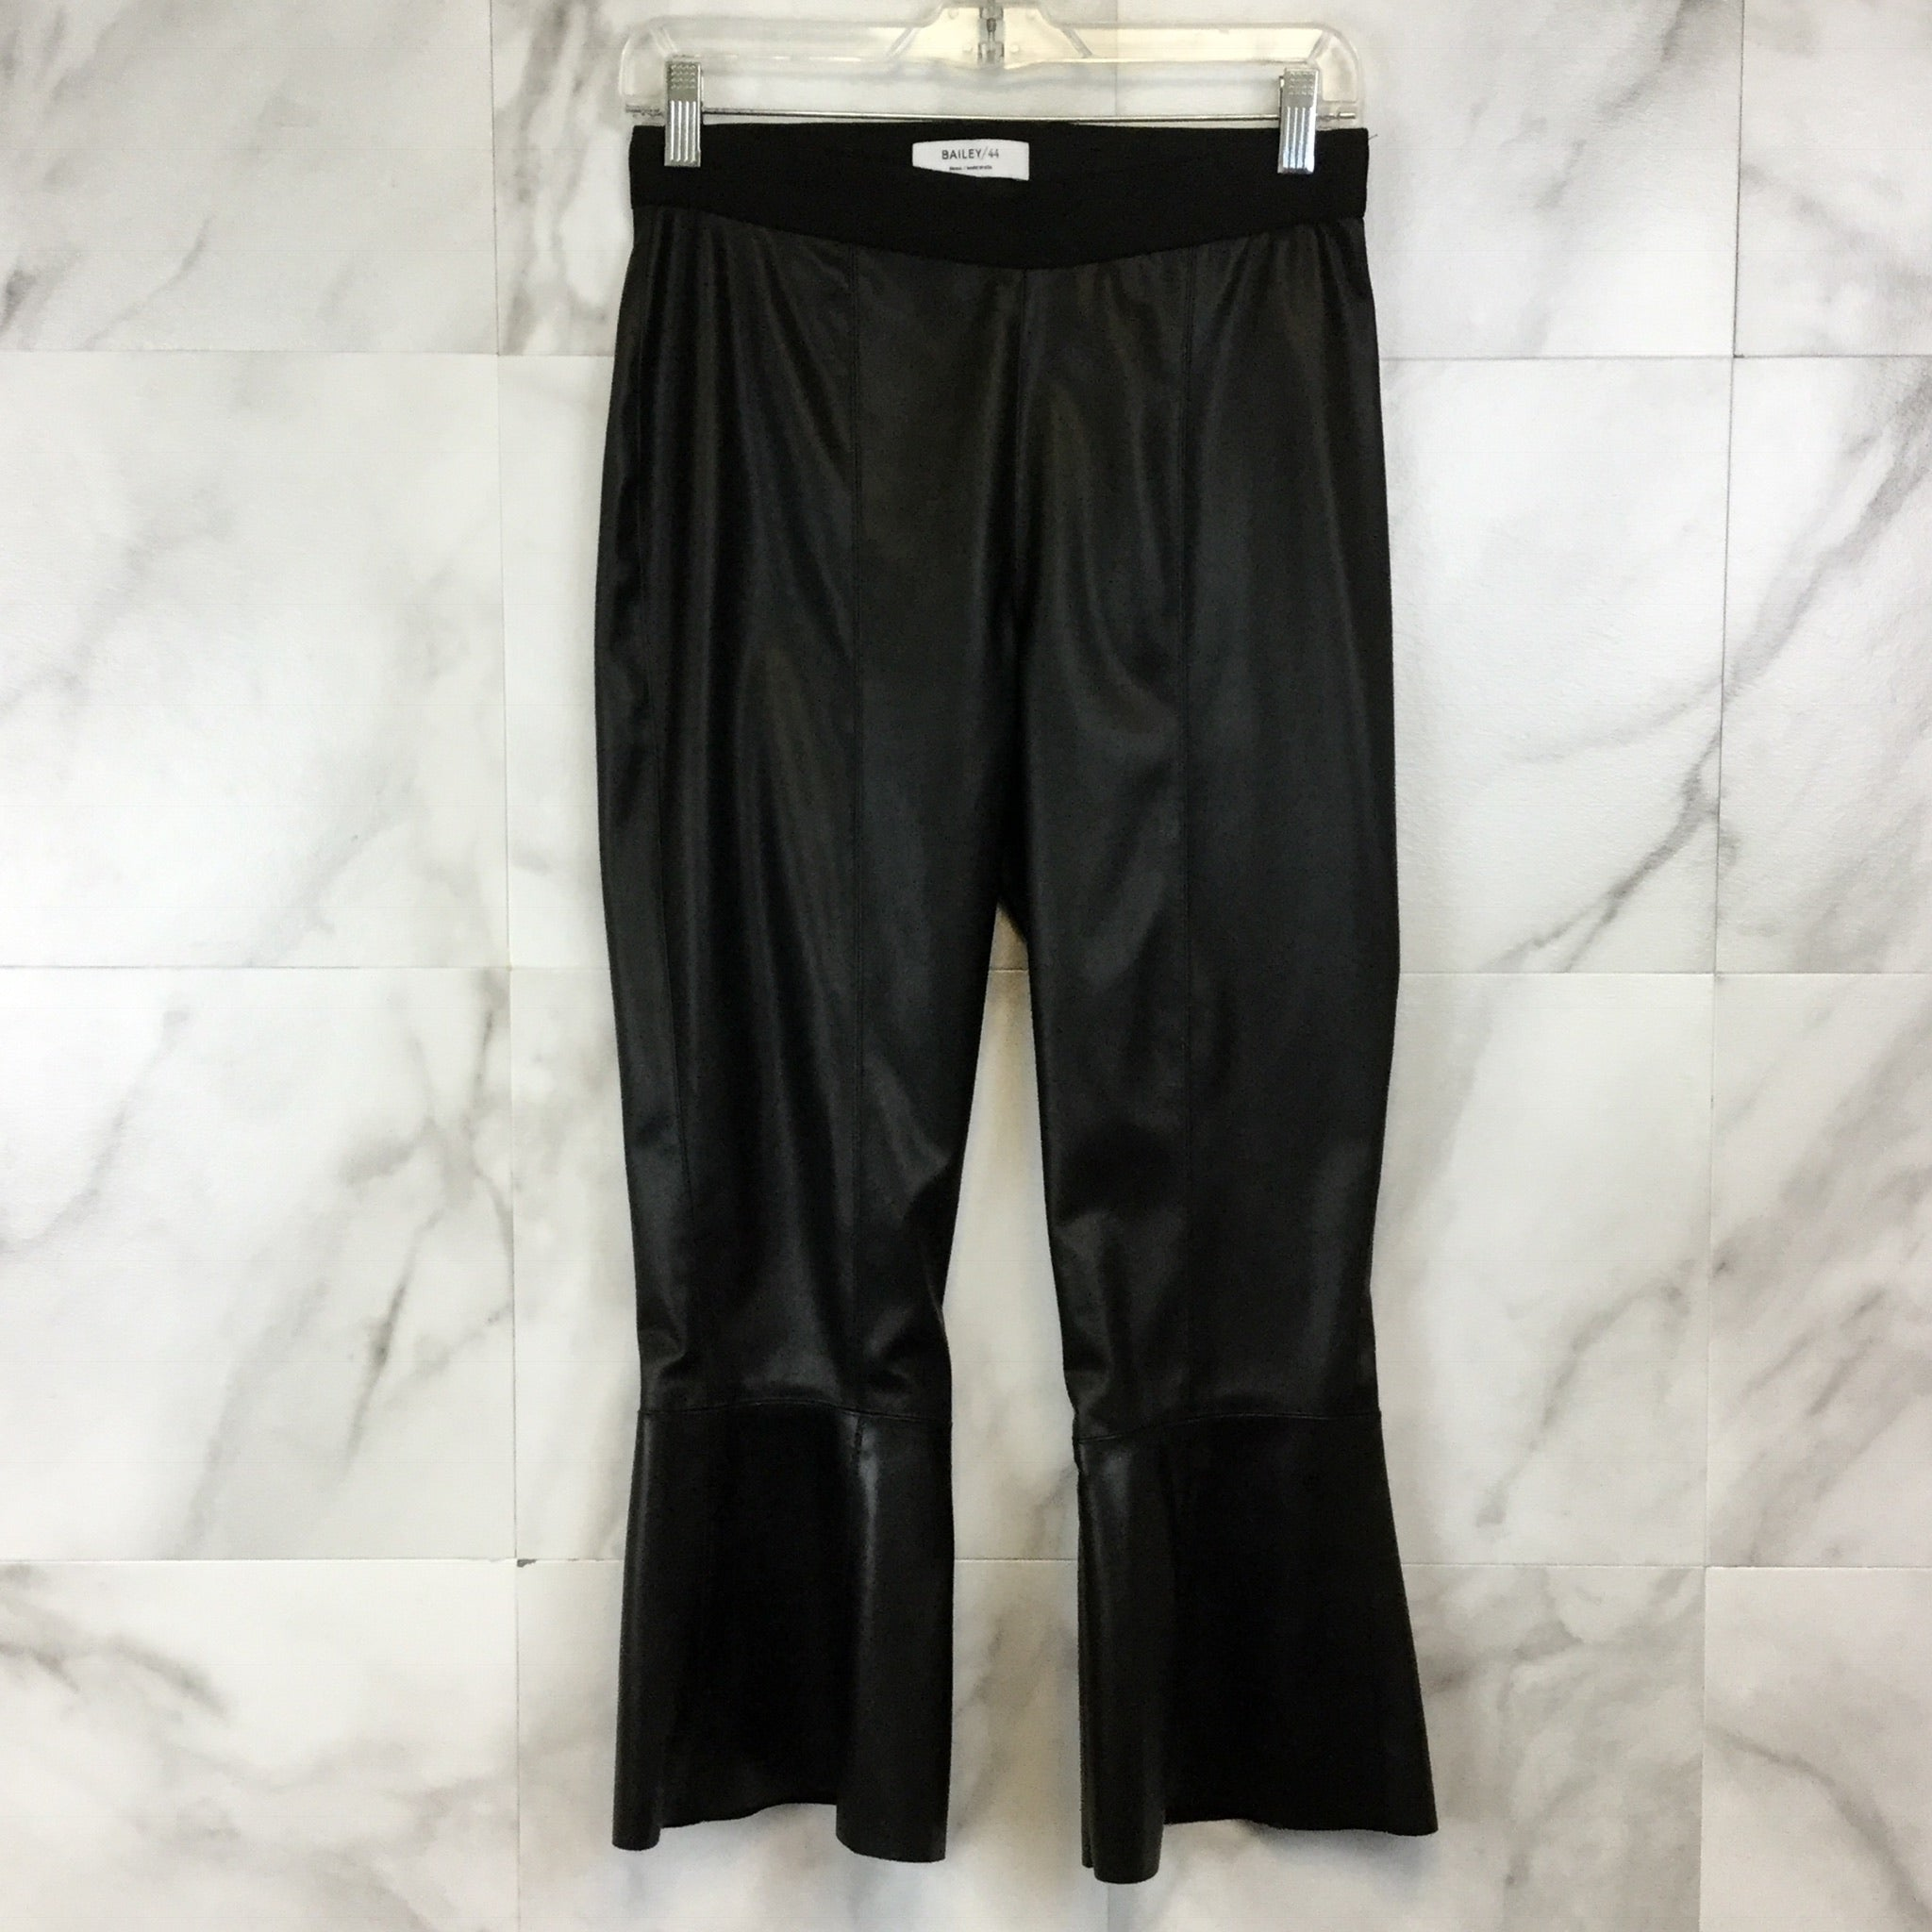 Bailey 44 Lupine Faux Leather Pants - size S